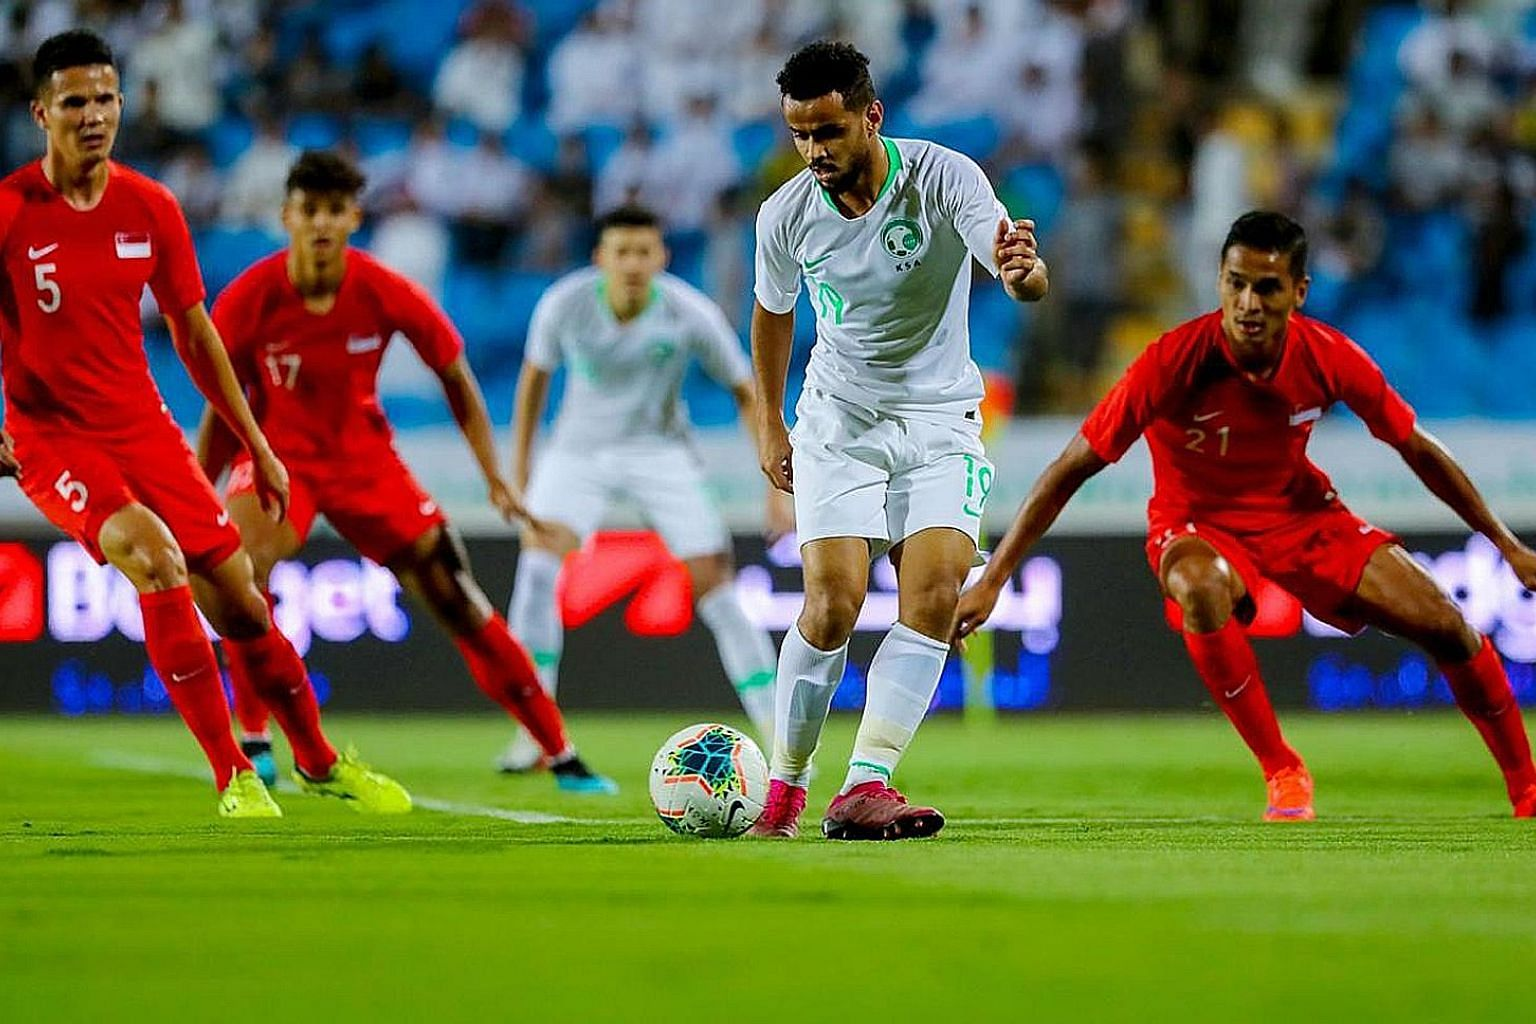 The Singapore defence finding Saudi Arabia forward Abdulfattah Asiri a hard man to contain. He scored a brace in the hosts' 3-0 win in the World Cup qualifier in Buraidah on Thursday night. PHOTO: SAUDI ARABIAN FOOTBALL FEDERATION